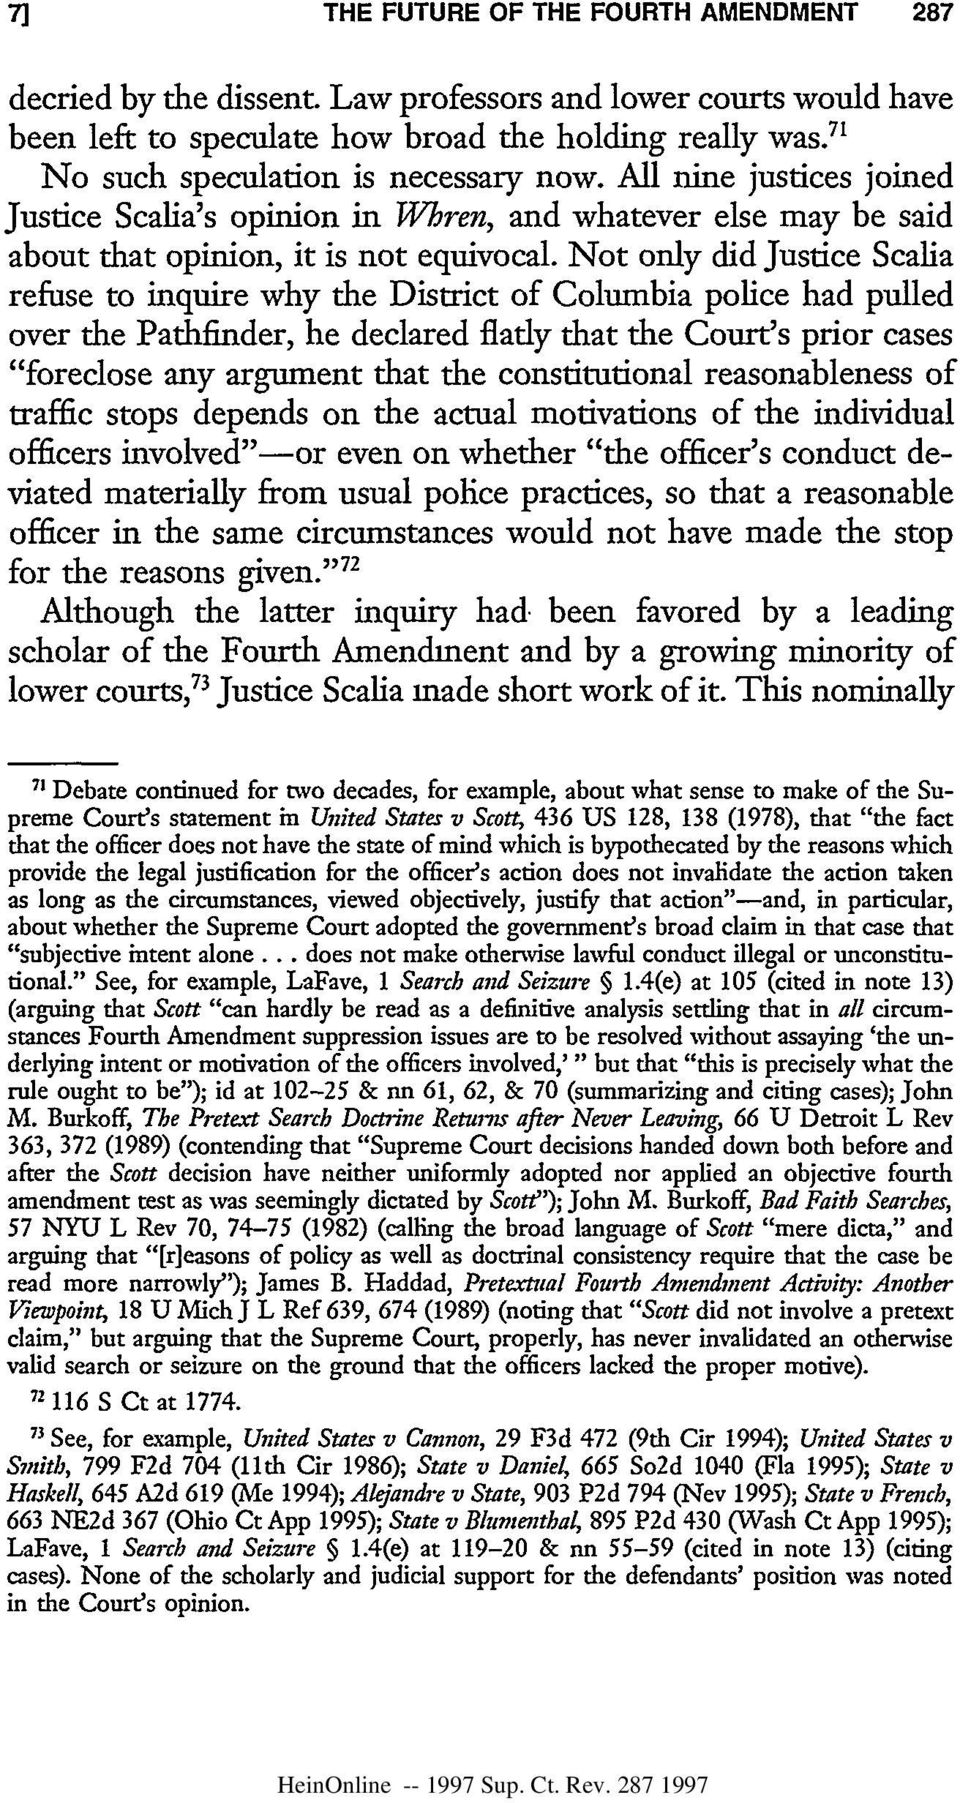 "Not only did Justice Scalia refuse to inquire why the District of Columbia police had pulled over the Pathfinder, he declared flady that the Court's prior cases ""foreclose any argument that the"